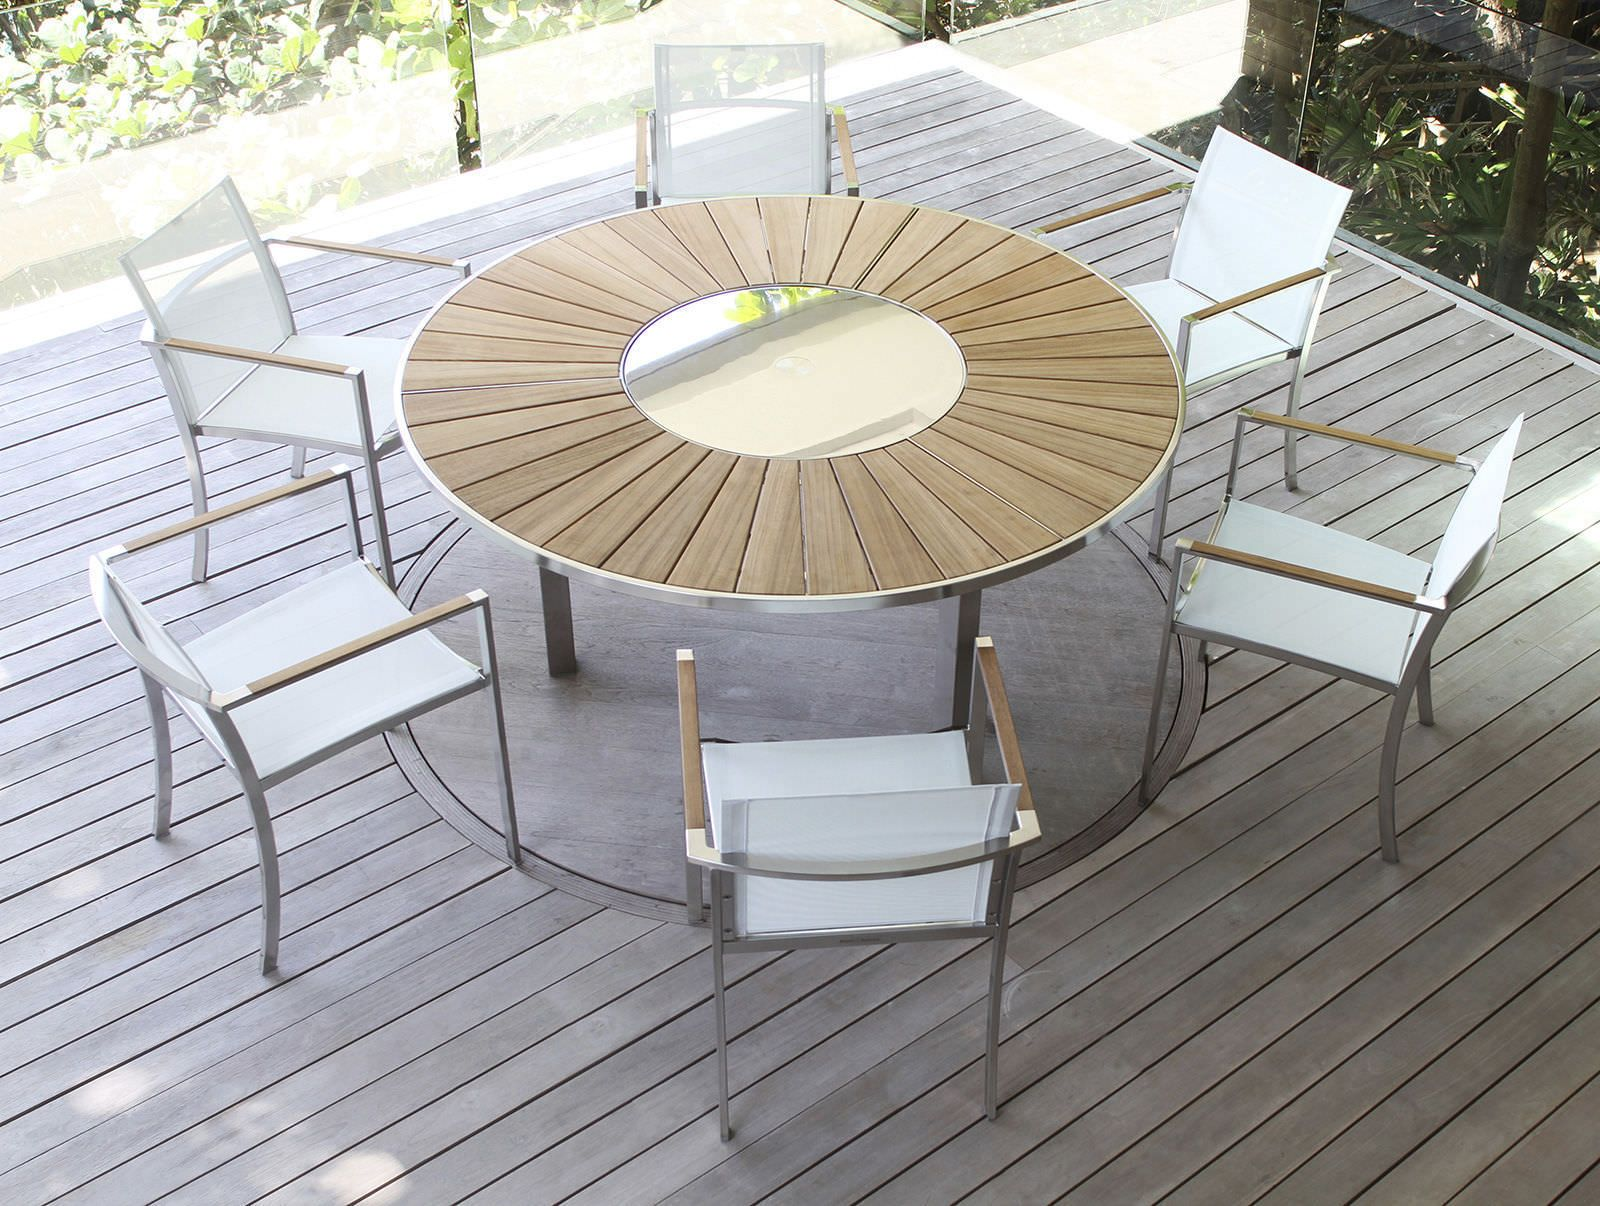 Royal Garden Meubles De Jardin Table Contemporaine De Jardin Ovale Ronde Ozn 240